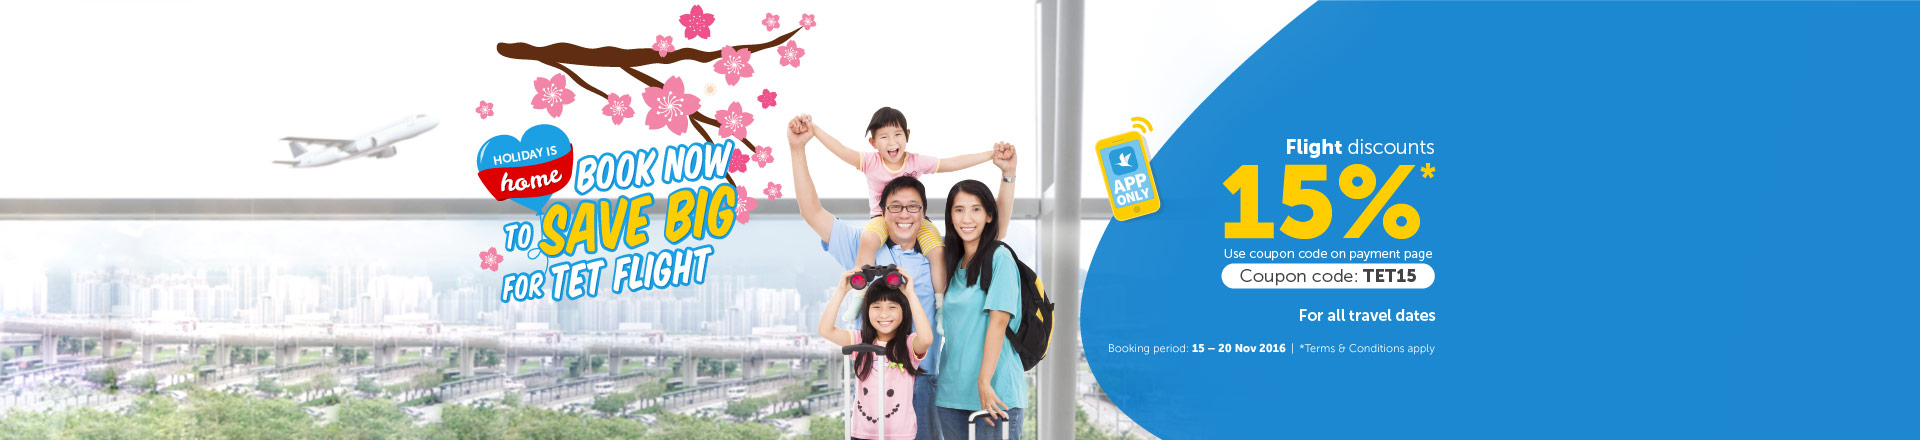 Book Now To Save Big For Tet Flights